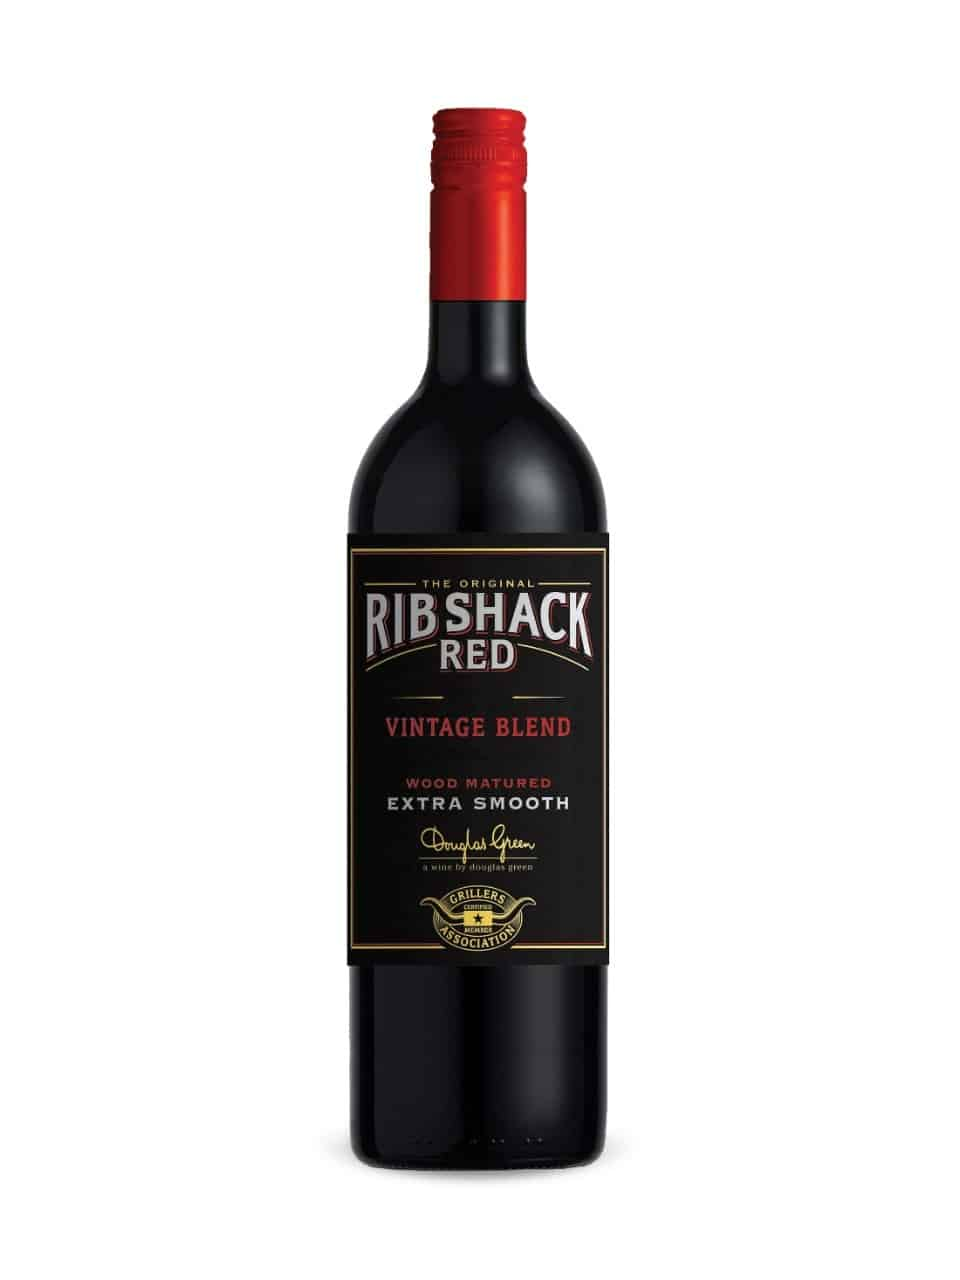 Rib Shack Red Vintage Blend 2013